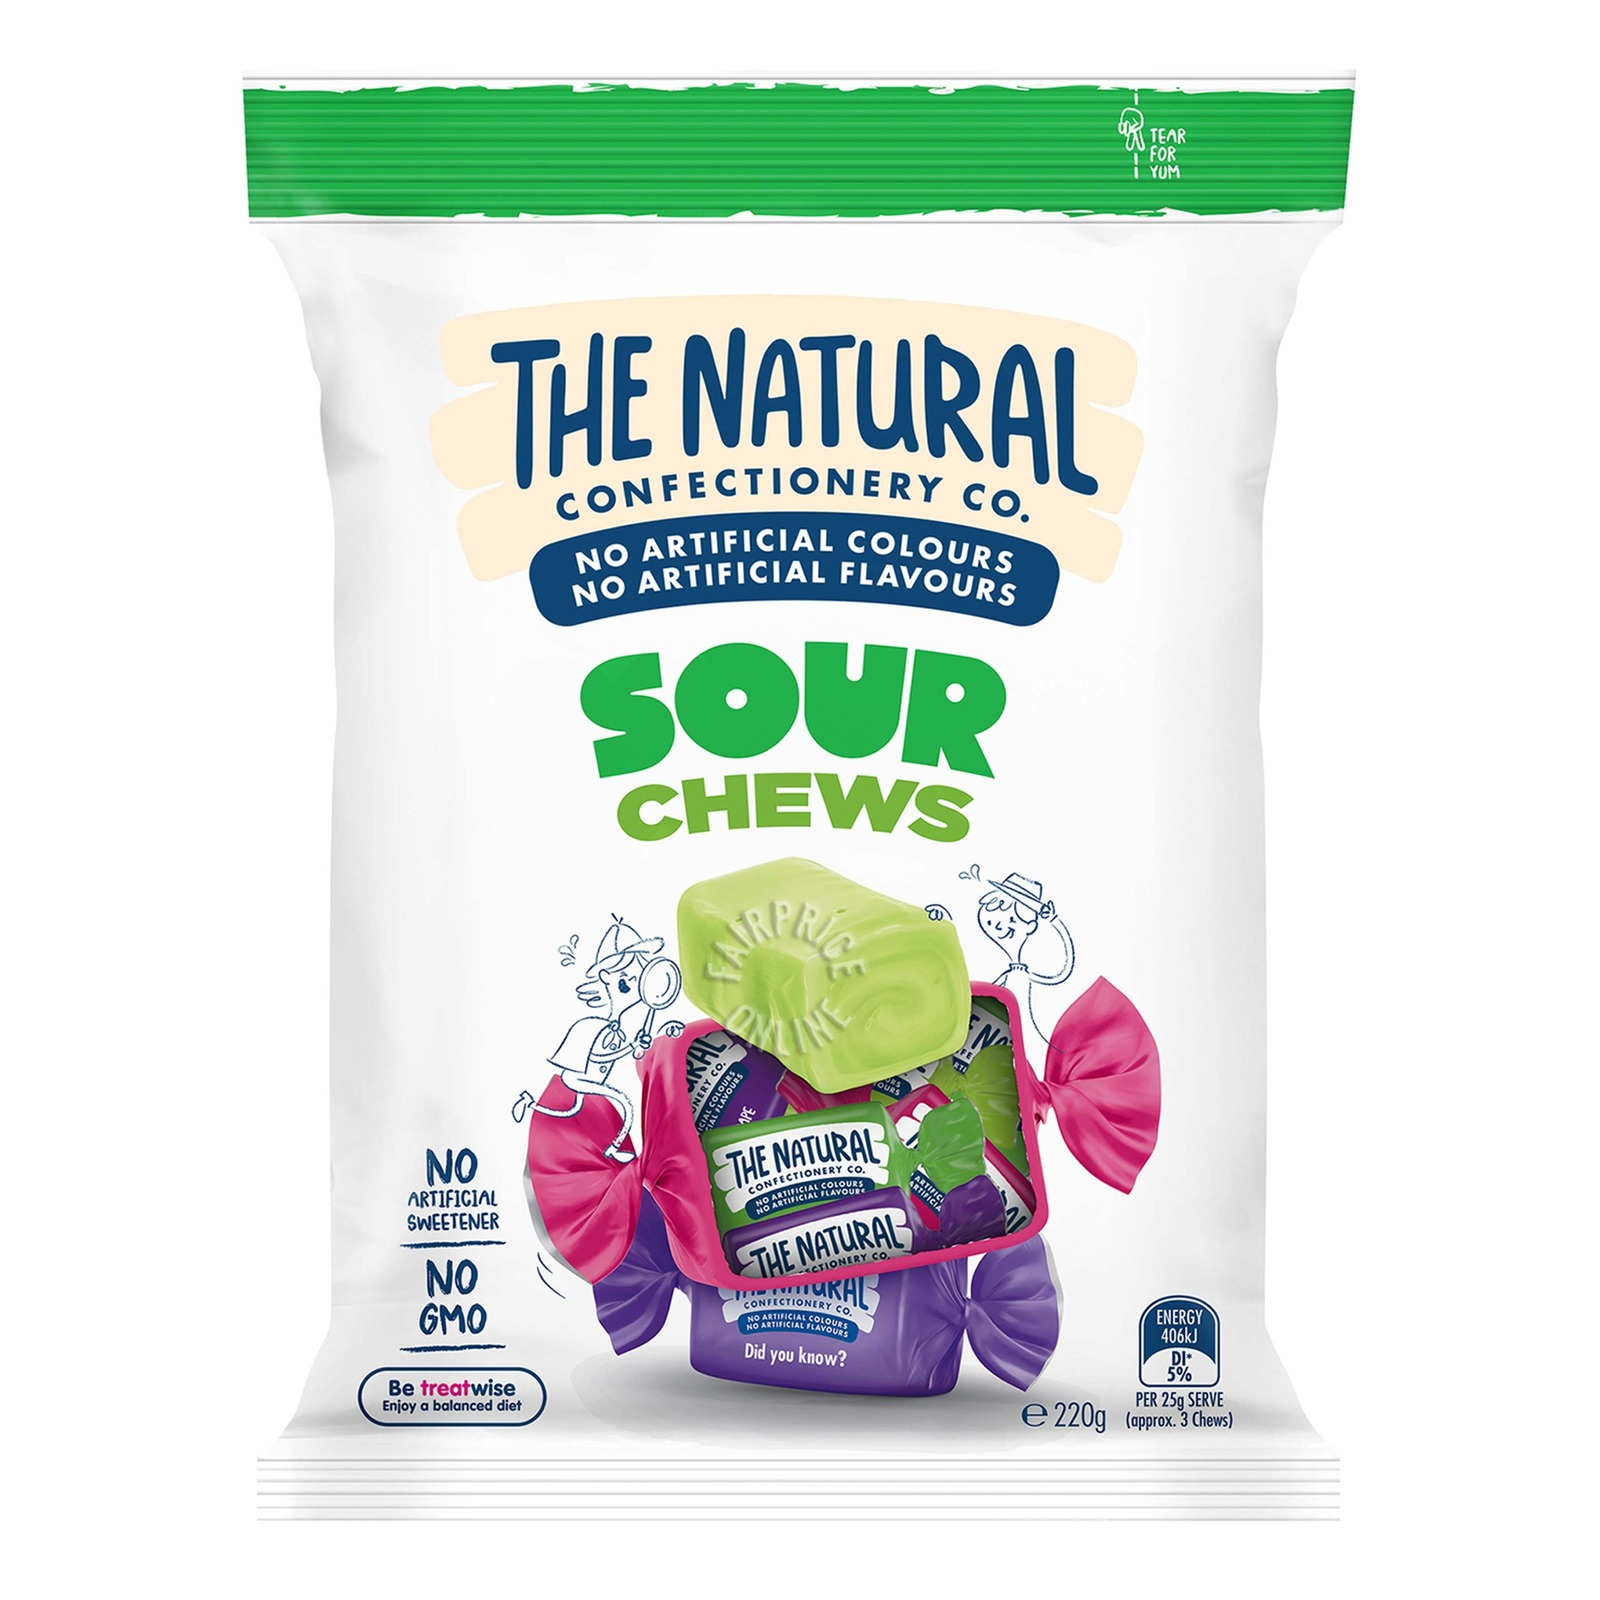 TNCC Chews Candies - Sour